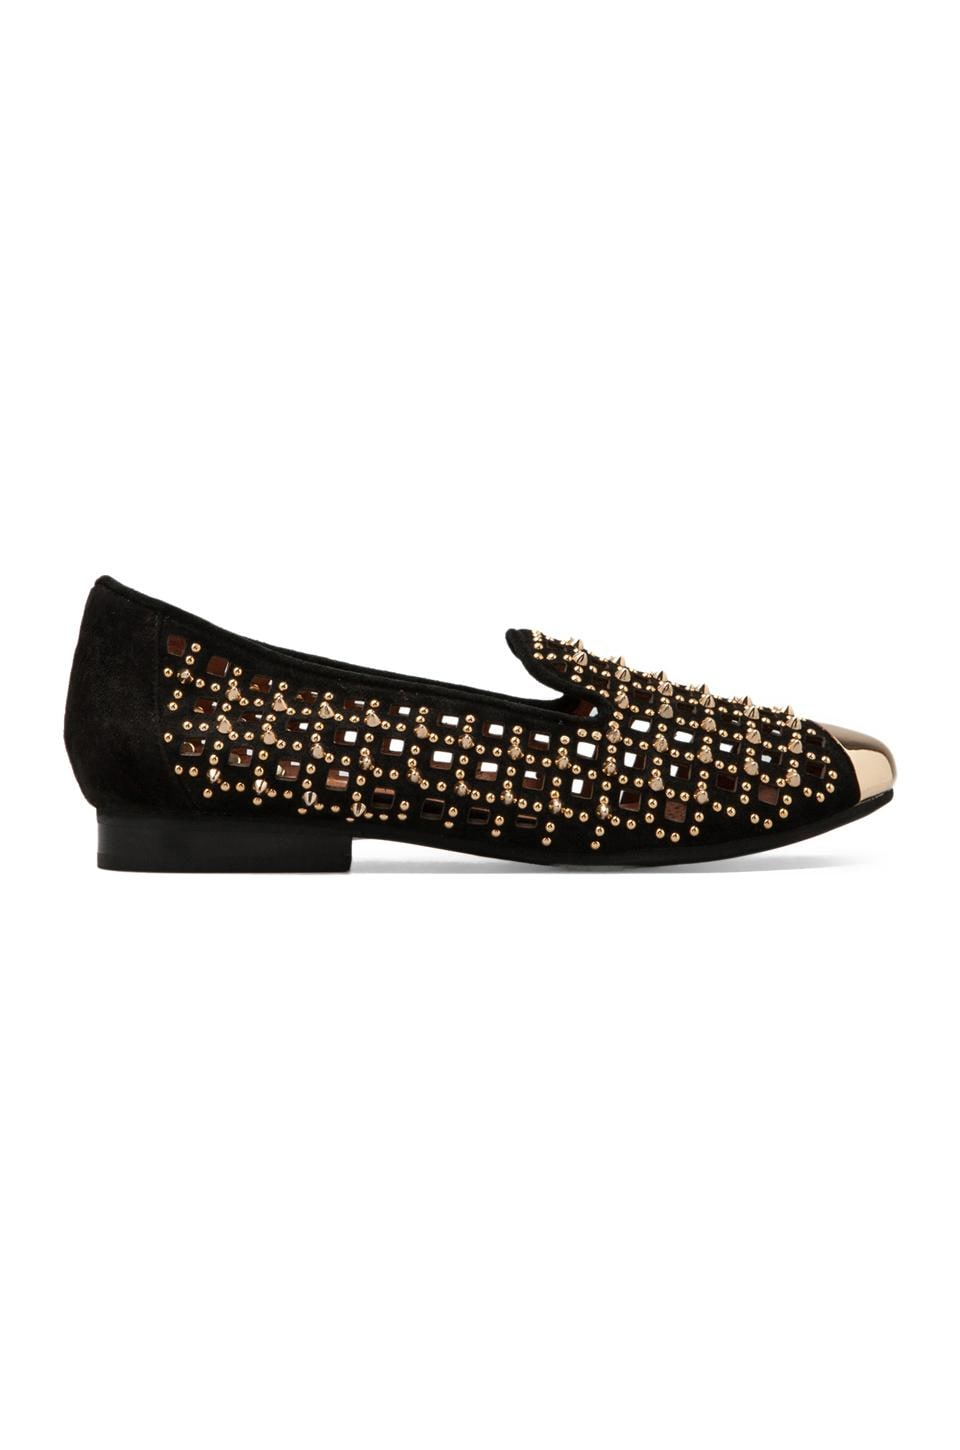 Jeffrey Campbell Hale-Spk in Black Suede Gold